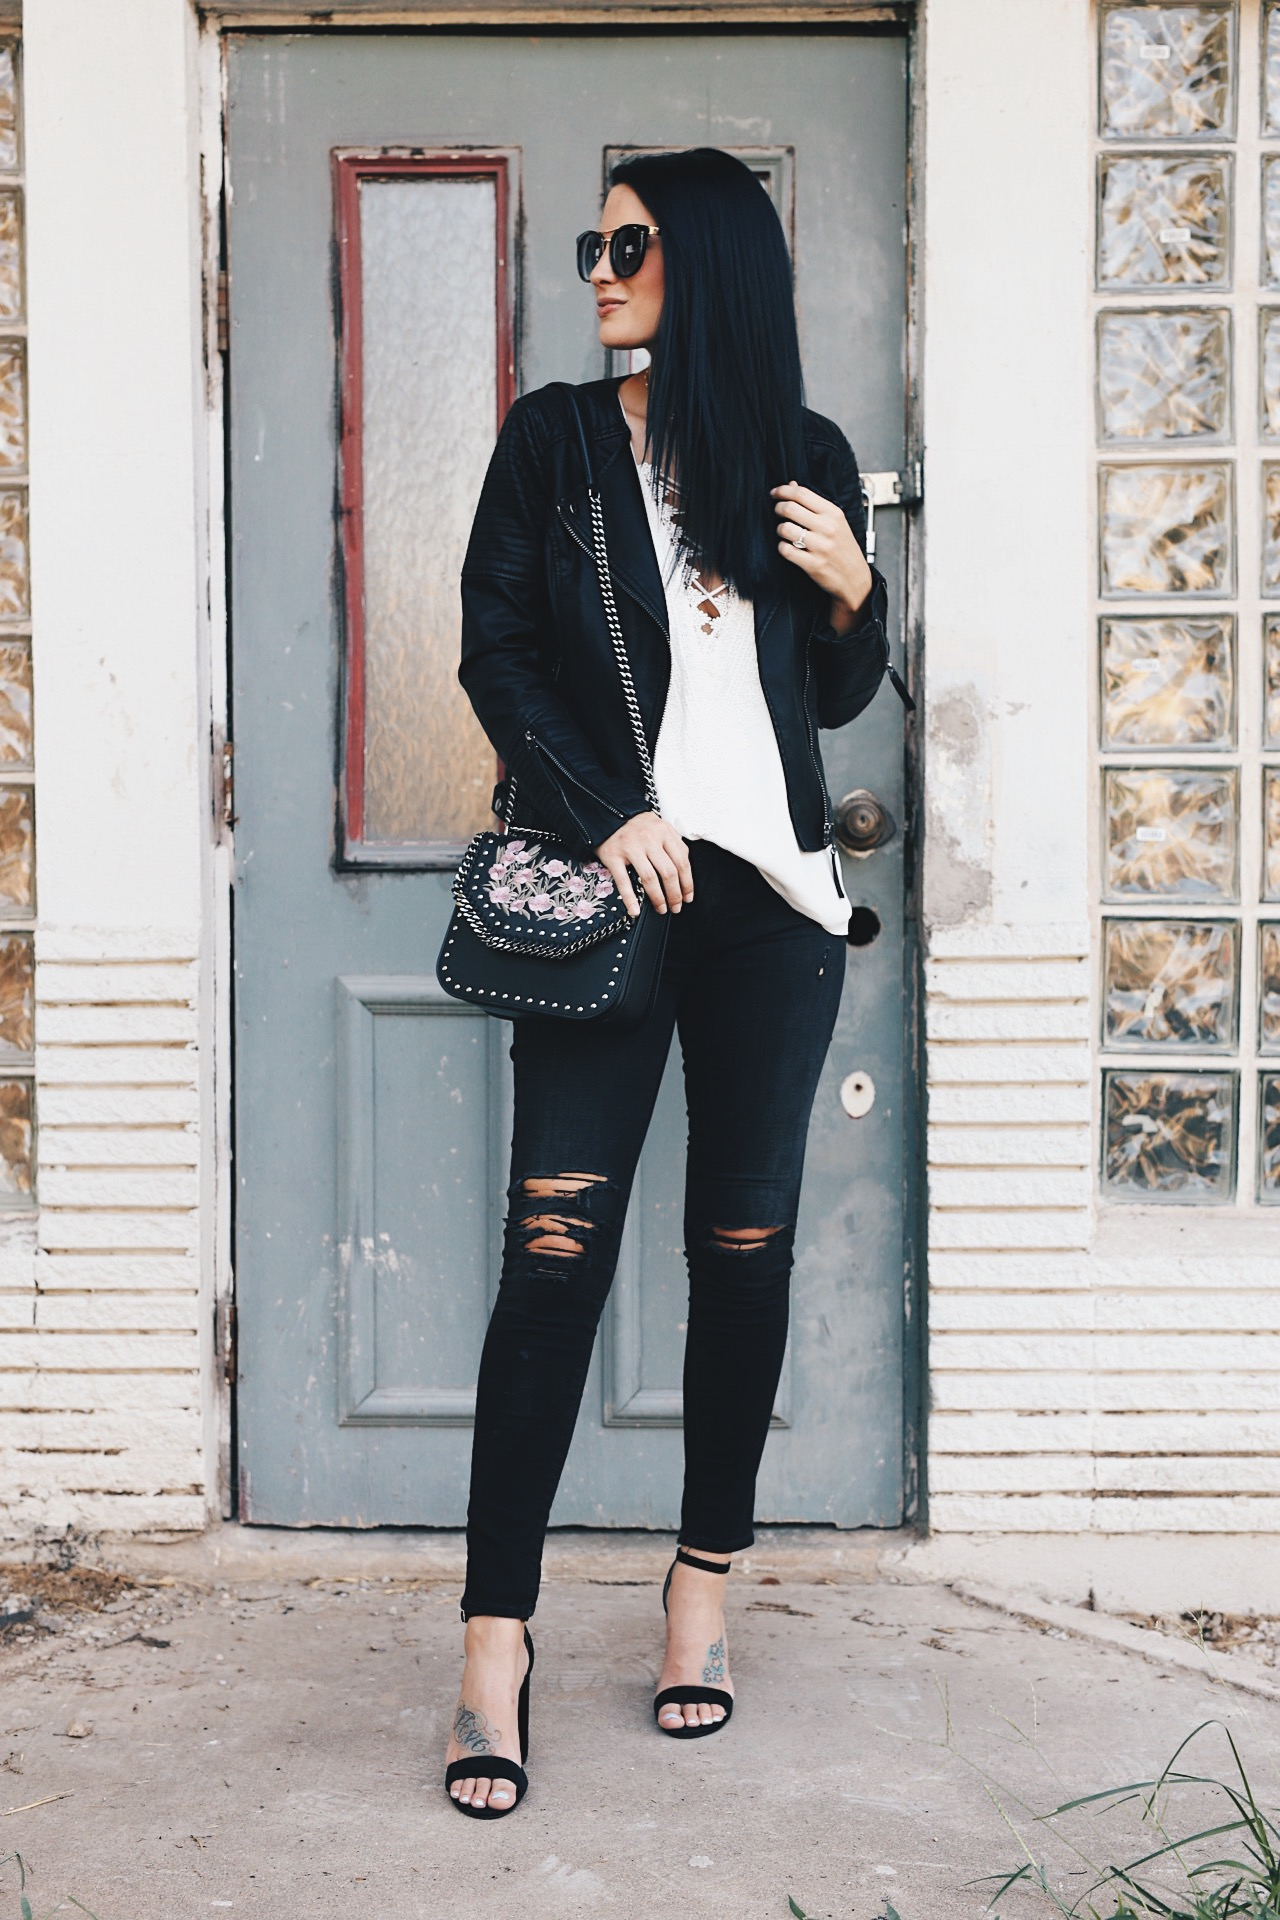 how to style an edgy outfit